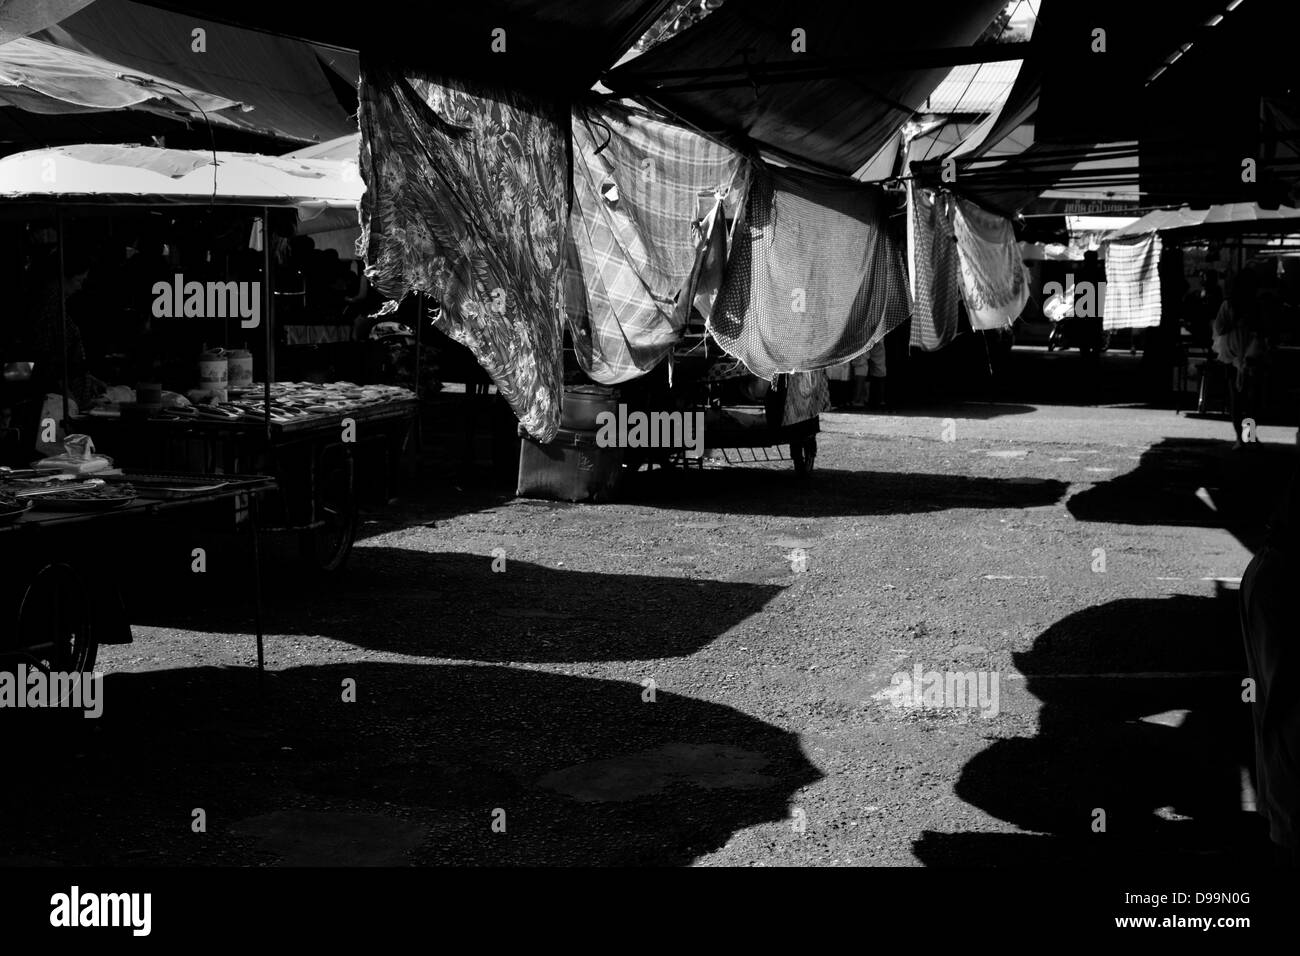 DOWNTOWN MARKET, PHUKET TOWN, PHUKET, THAILAND APRIL 19 2013 - Stock Image